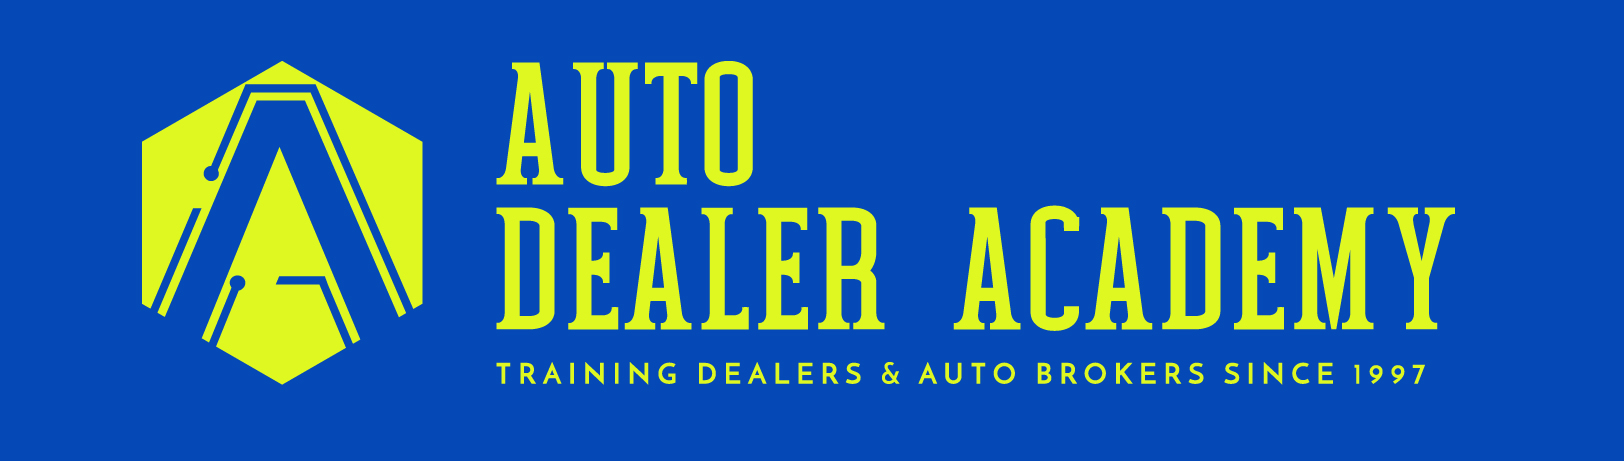 Auto Broker Dealer License Training: Auto Broker Training: